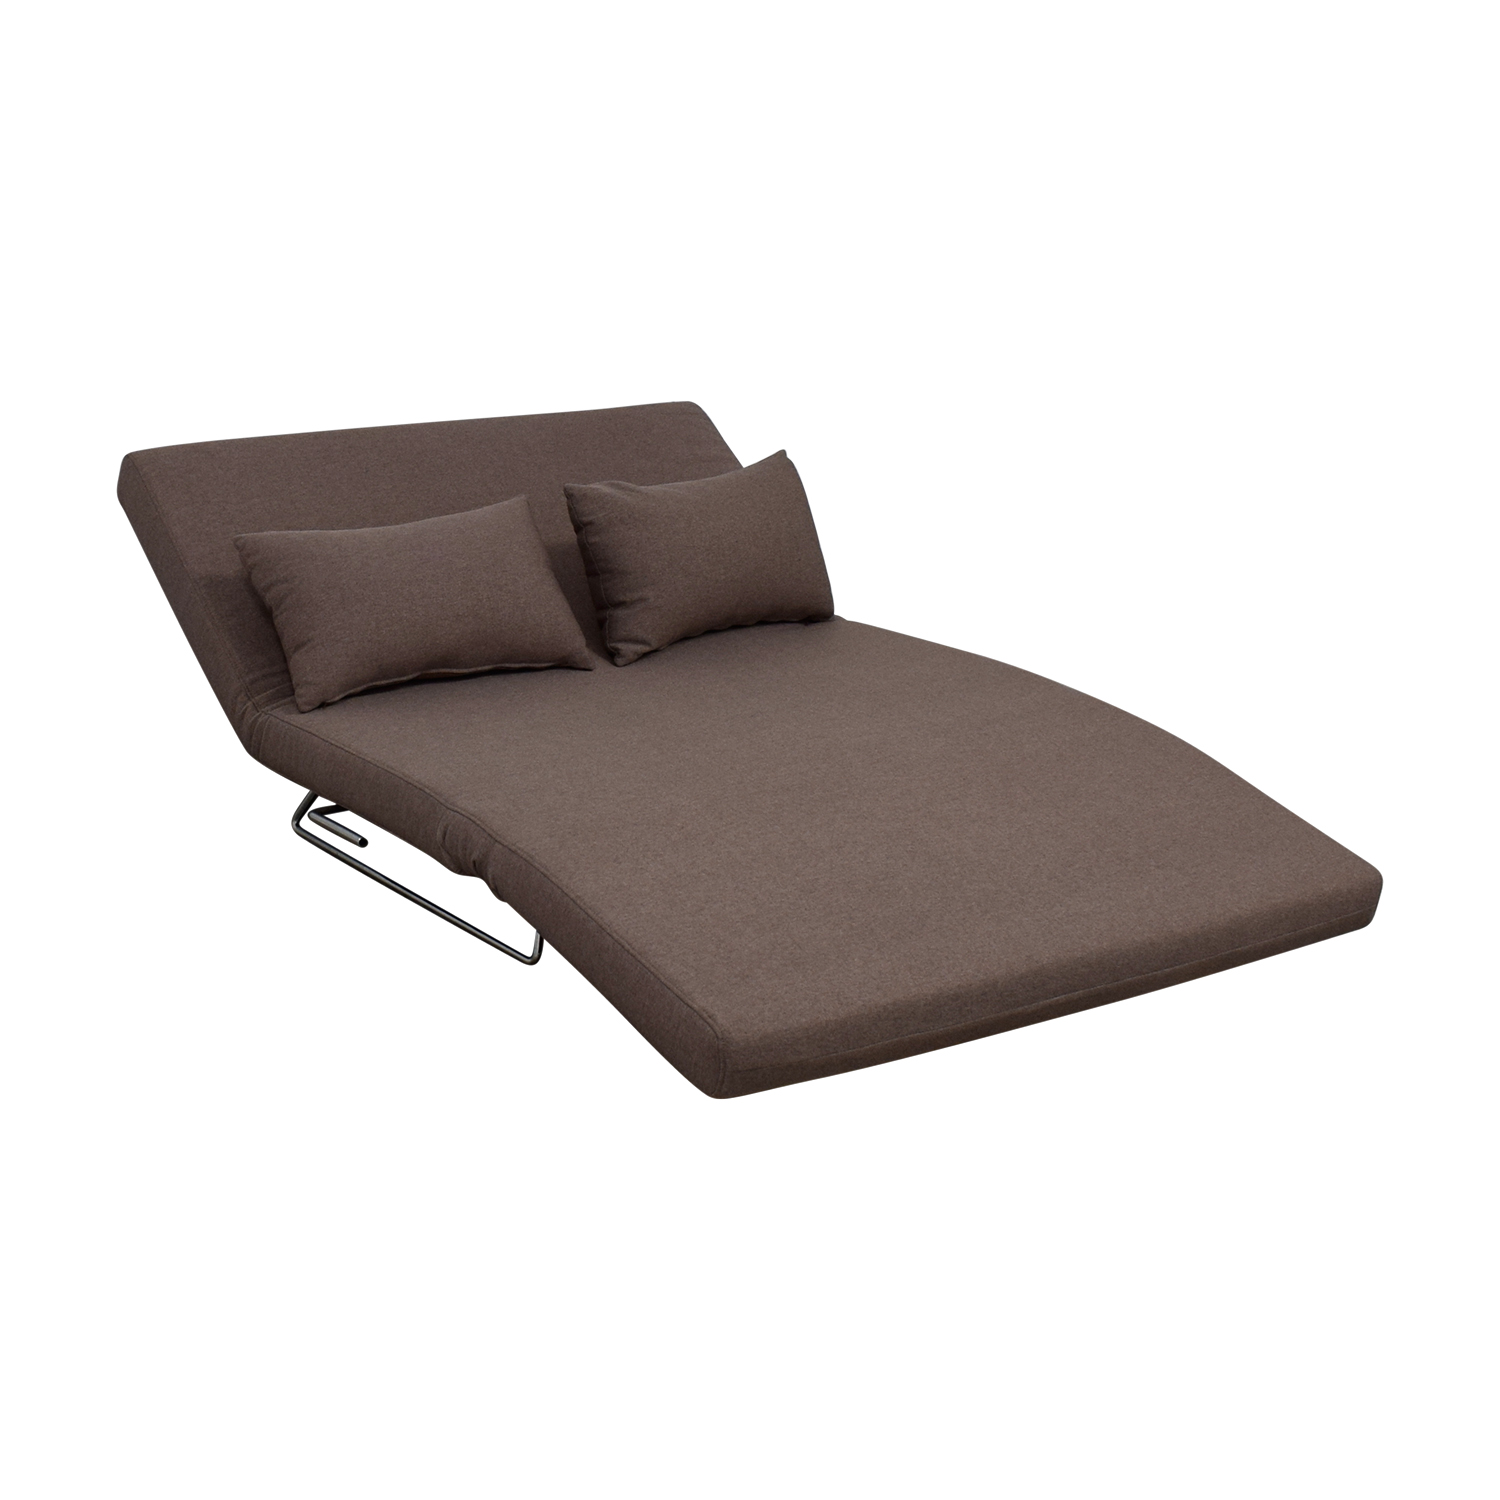 All Modern All Modern Gray Convertible Futon dimensions